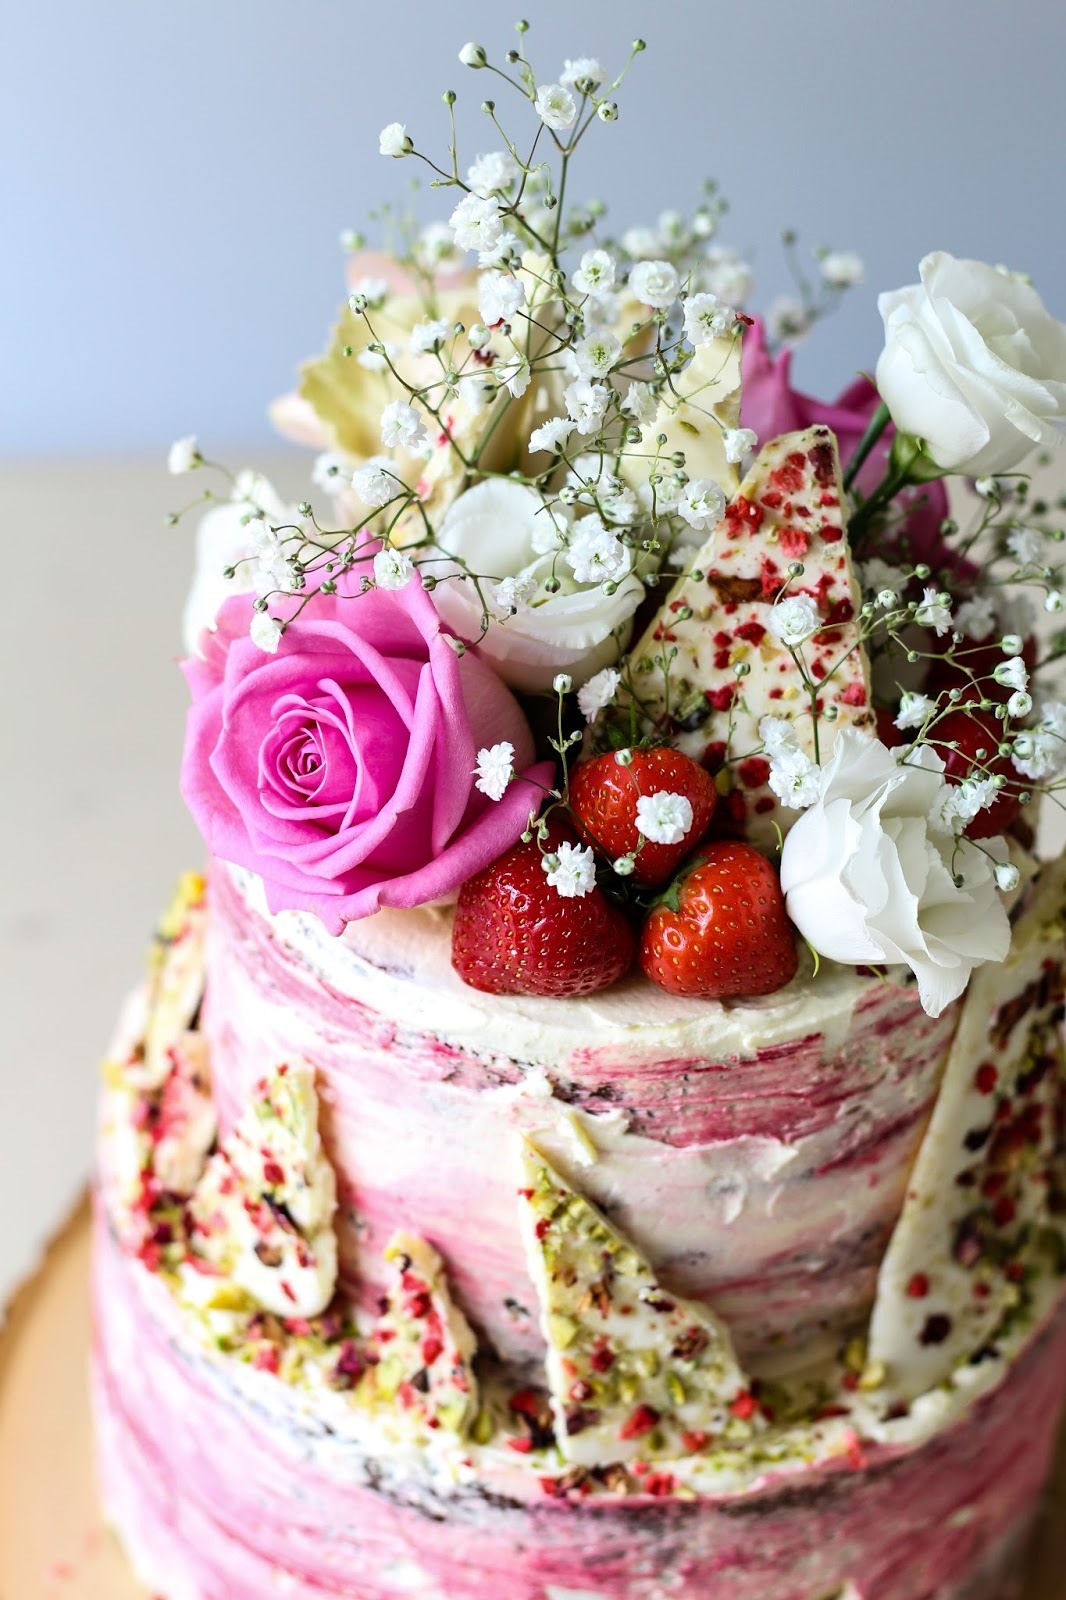 The Spoon And Whisk Strawberry White Chocolate And Pistachio Tier Cake